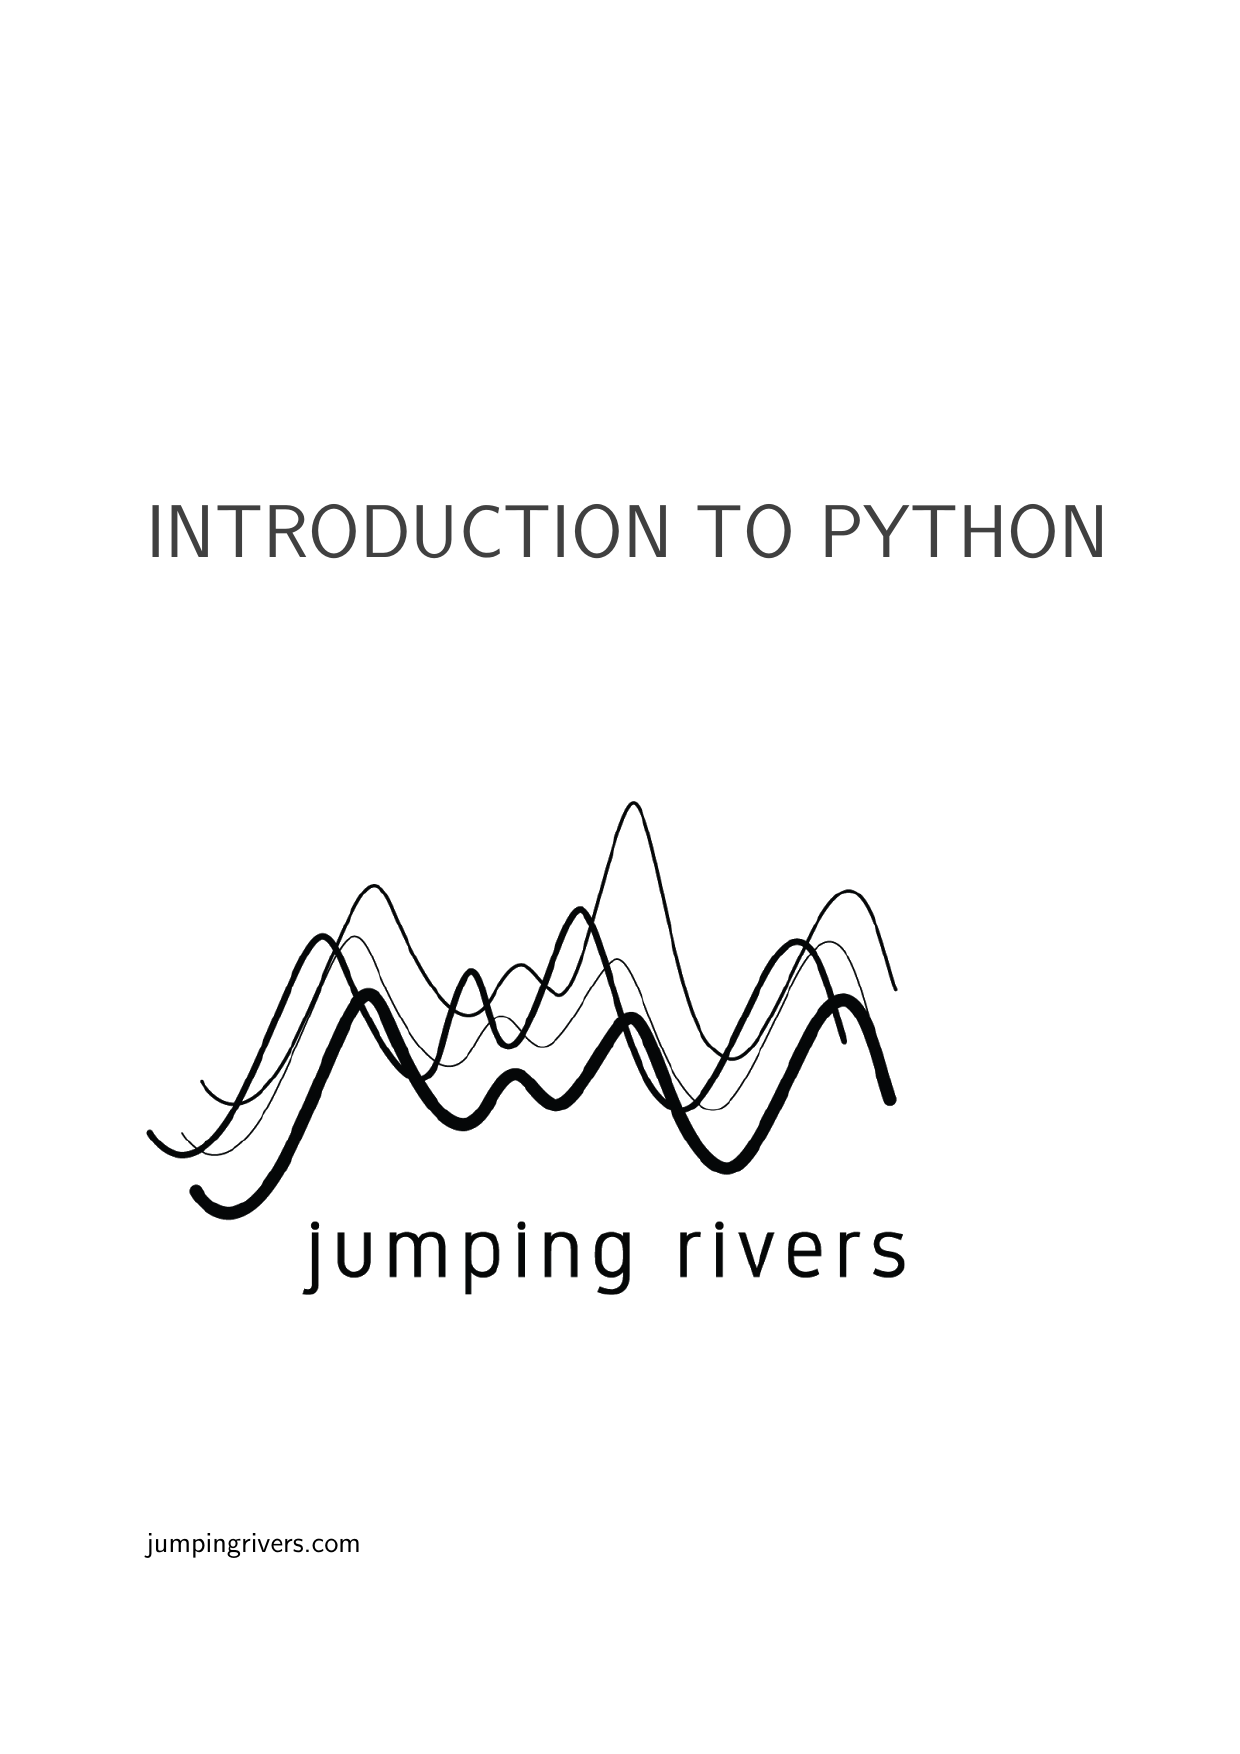 Example course material for 'Introduction to Python